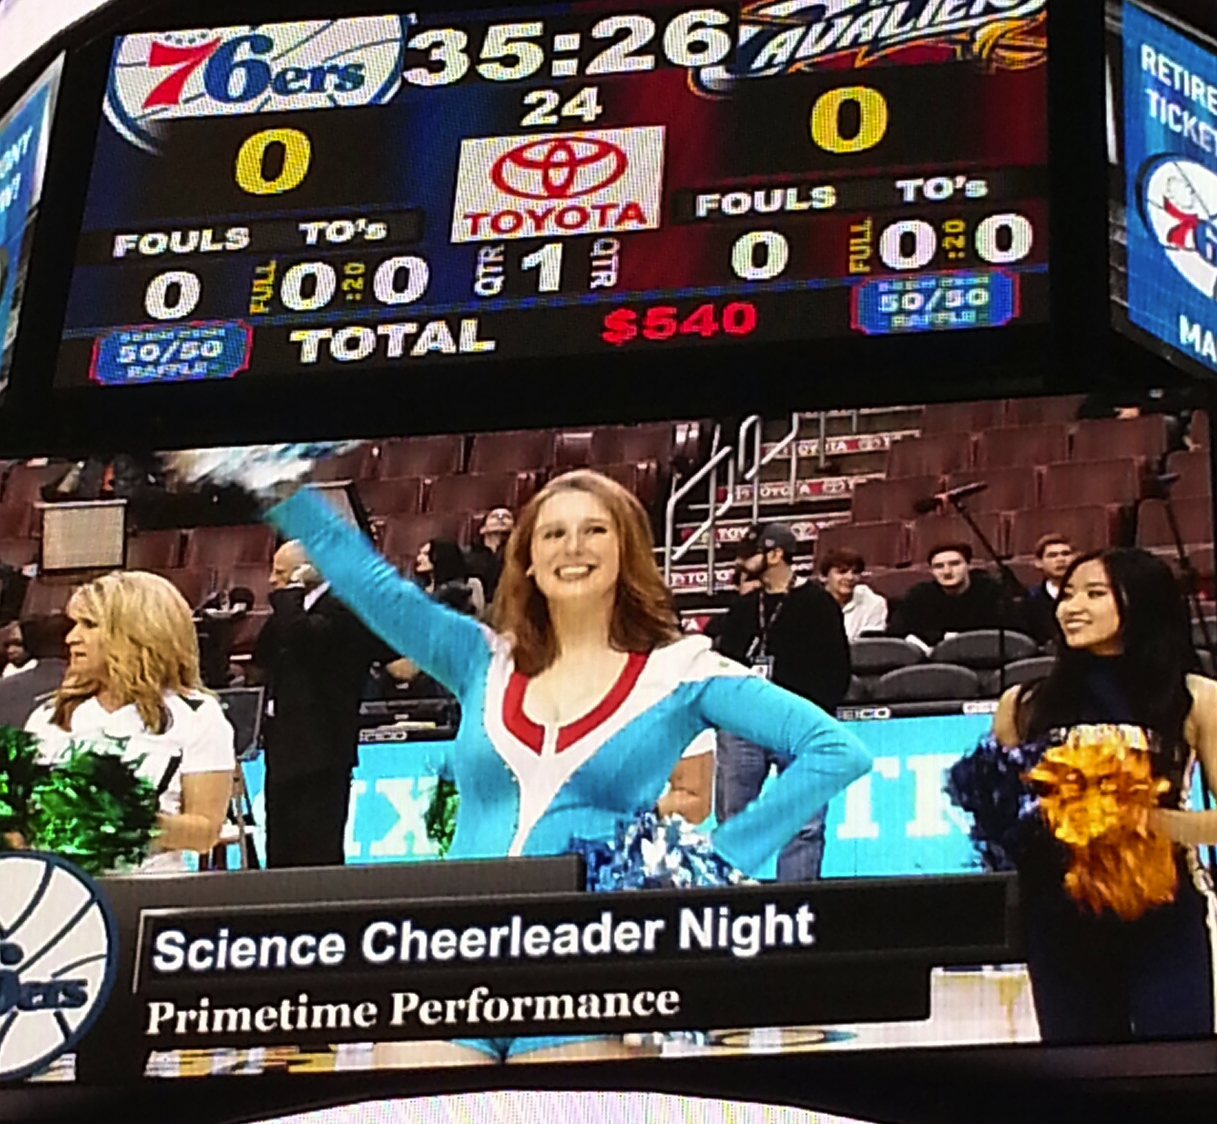 Science Cheerleader Night at the Philadelphia 76ers game